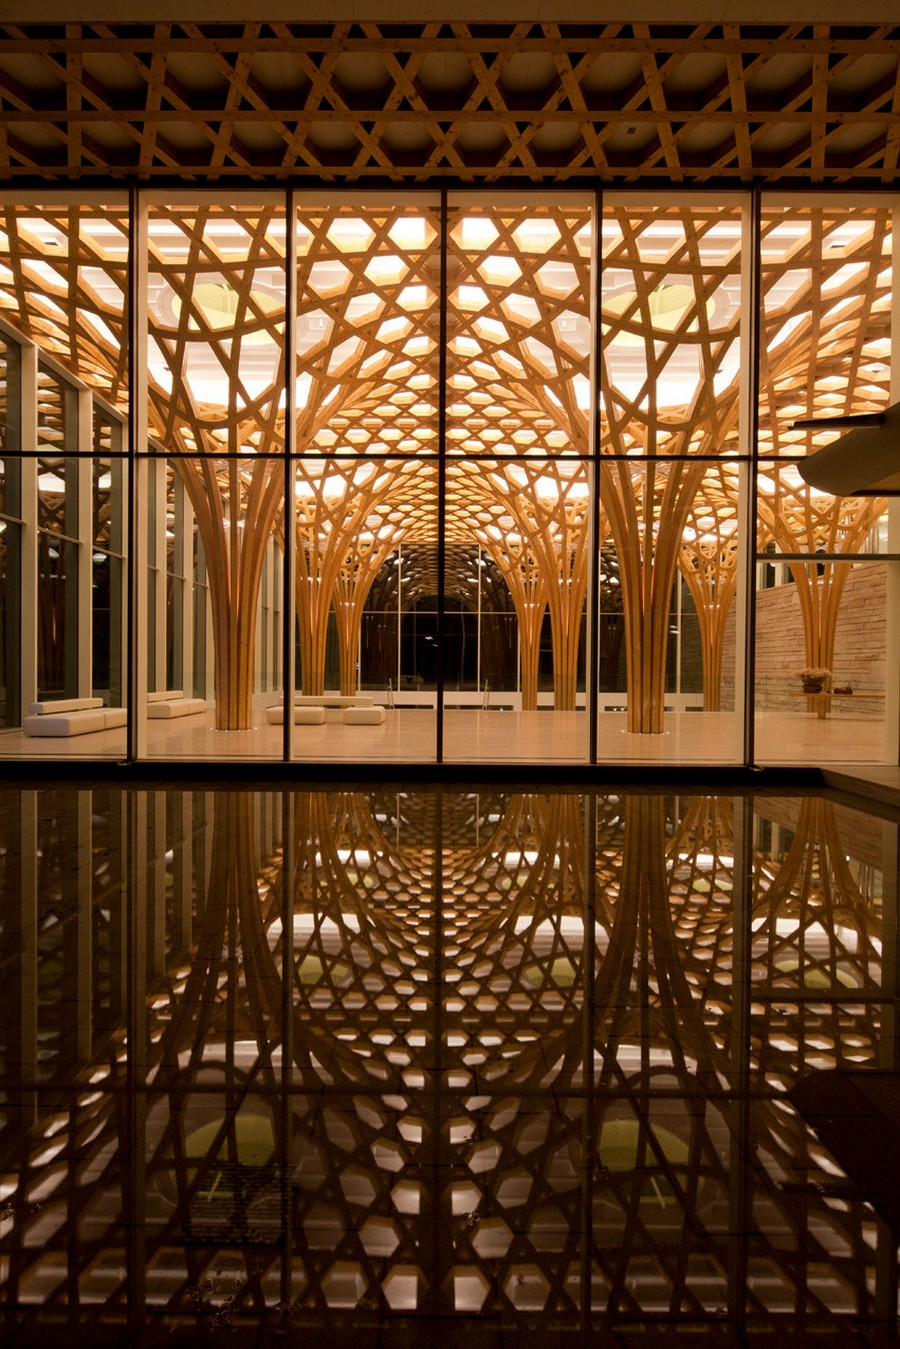 Shigeru Ban Is A Symbol Of Japan's Modern Architecture Industry Shigeru Ban Shigeru Ban Is A Symbol Of Japan's Modern Architecture Industry Shigeru Ban Is A Symbol Of Japans Modern Architecture Industry 8